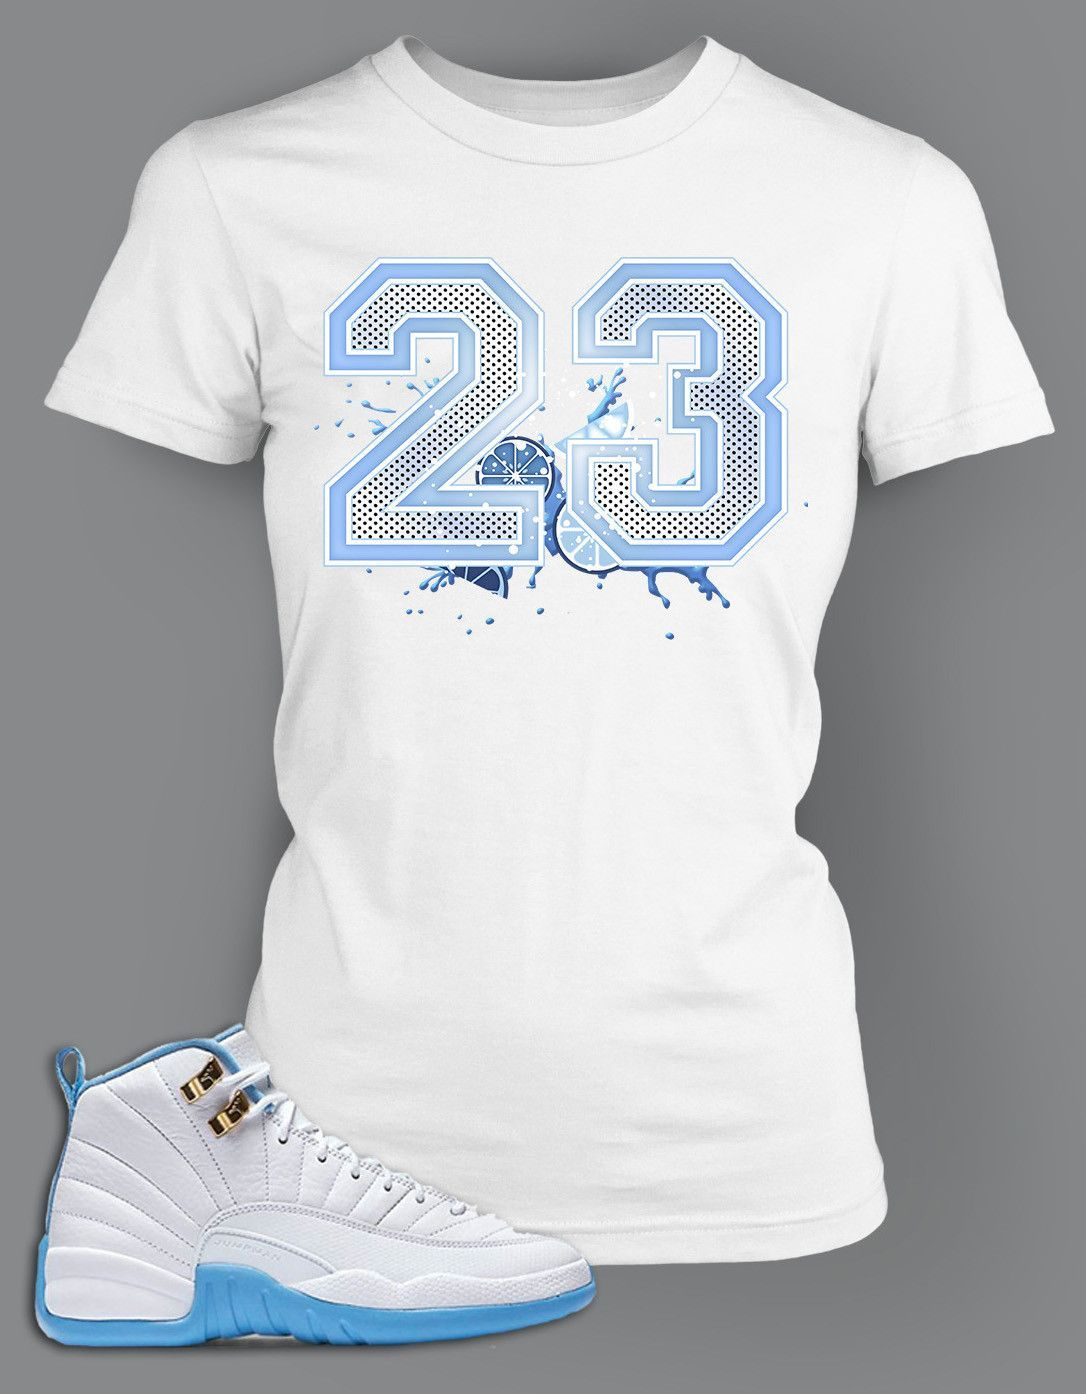 4728c49e80b06e Womens Graphic T Shirt To Match Retro Air Jordan 12 Melo Shoe ...